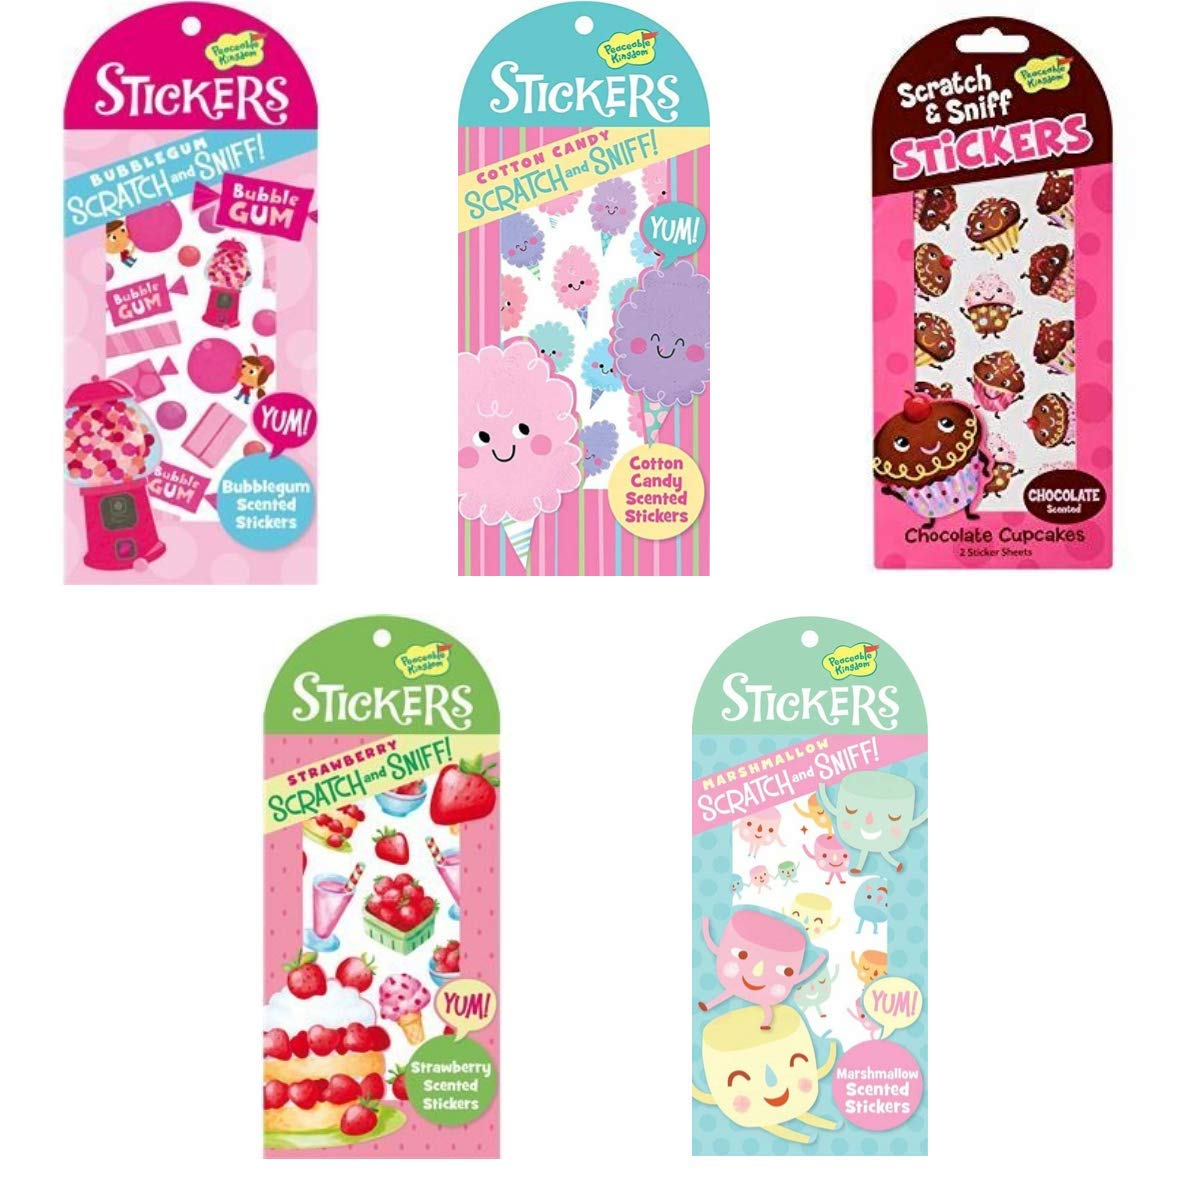 Peaceable Kingdom Scratch and Sniff Bubblegum Scented Sticker Pack 4204508